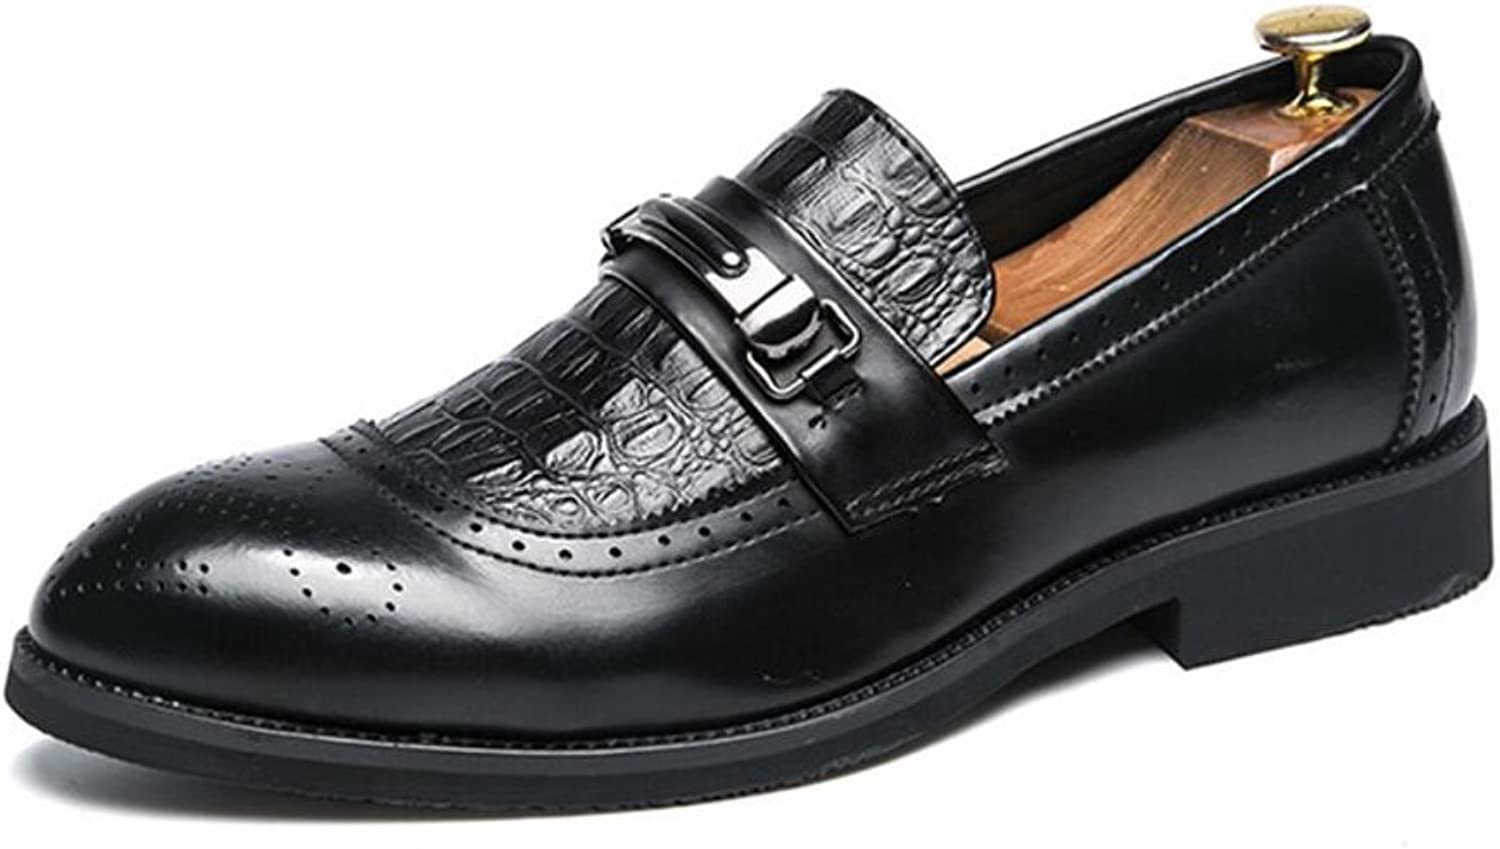 Men's Formal shoes Summer Fall Pointed shoes Mens Fashion Casual Leisure Office Business shoes Loafers & Slip-Ons (color   Black, Size   38)